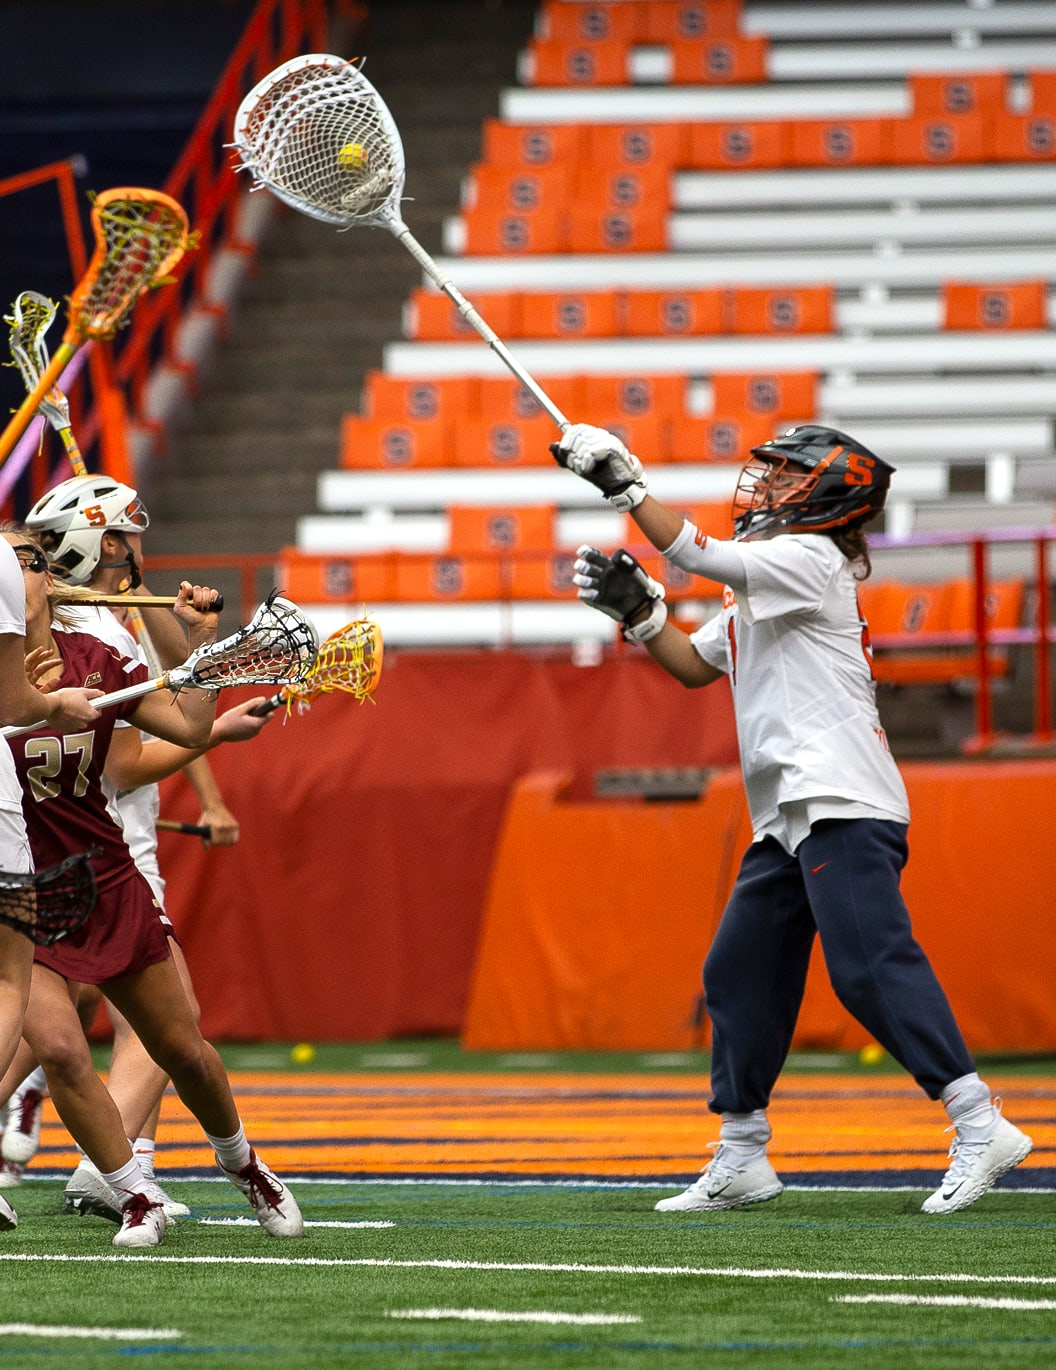 SU WLAX vs Boston College